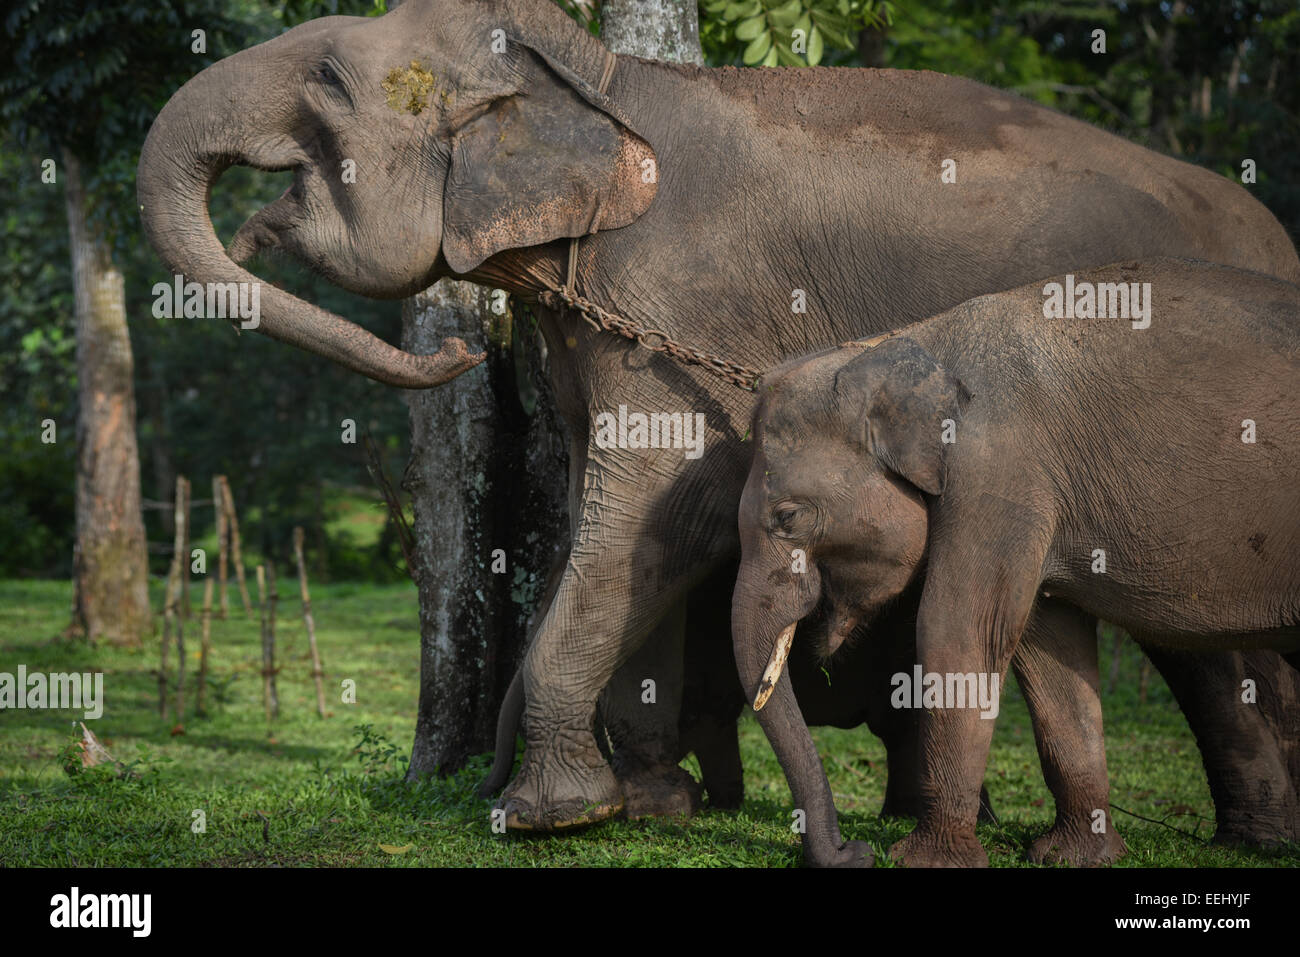 Adult and juvenile elephants in Way Kambas National Park, Indonesia. - Stock Image